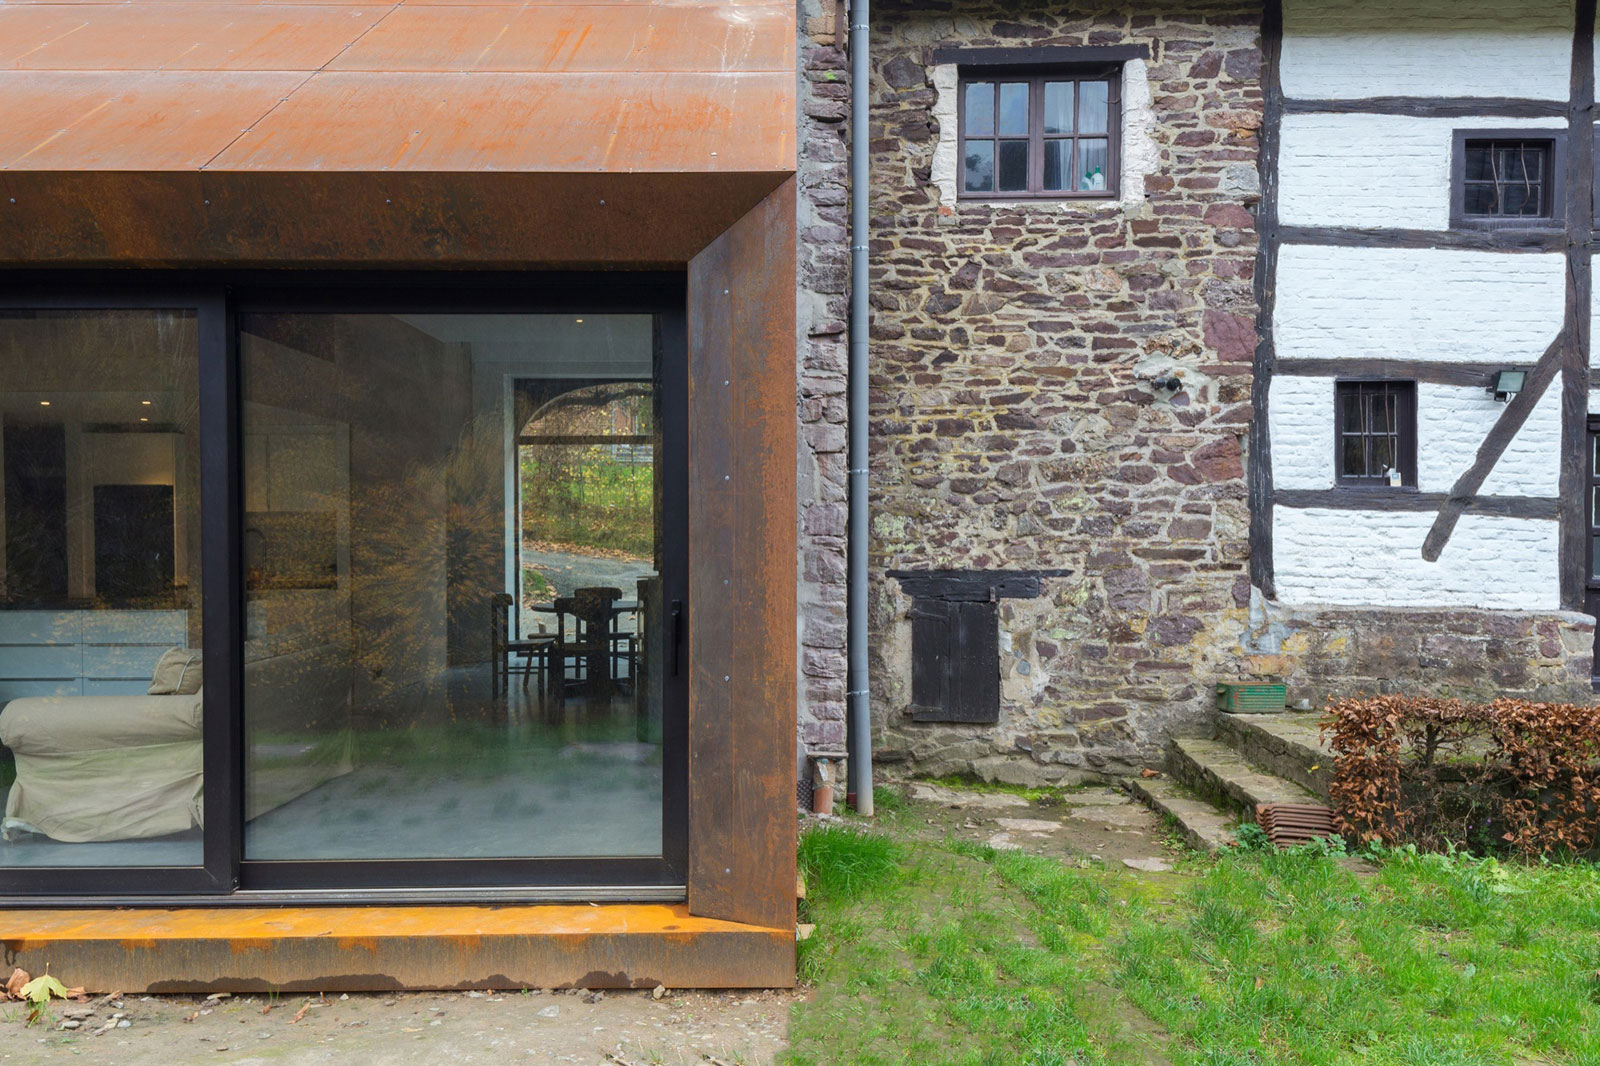 Puzzle's Architecture Create a Contemporary Extension for an Eighteenth-Century Home